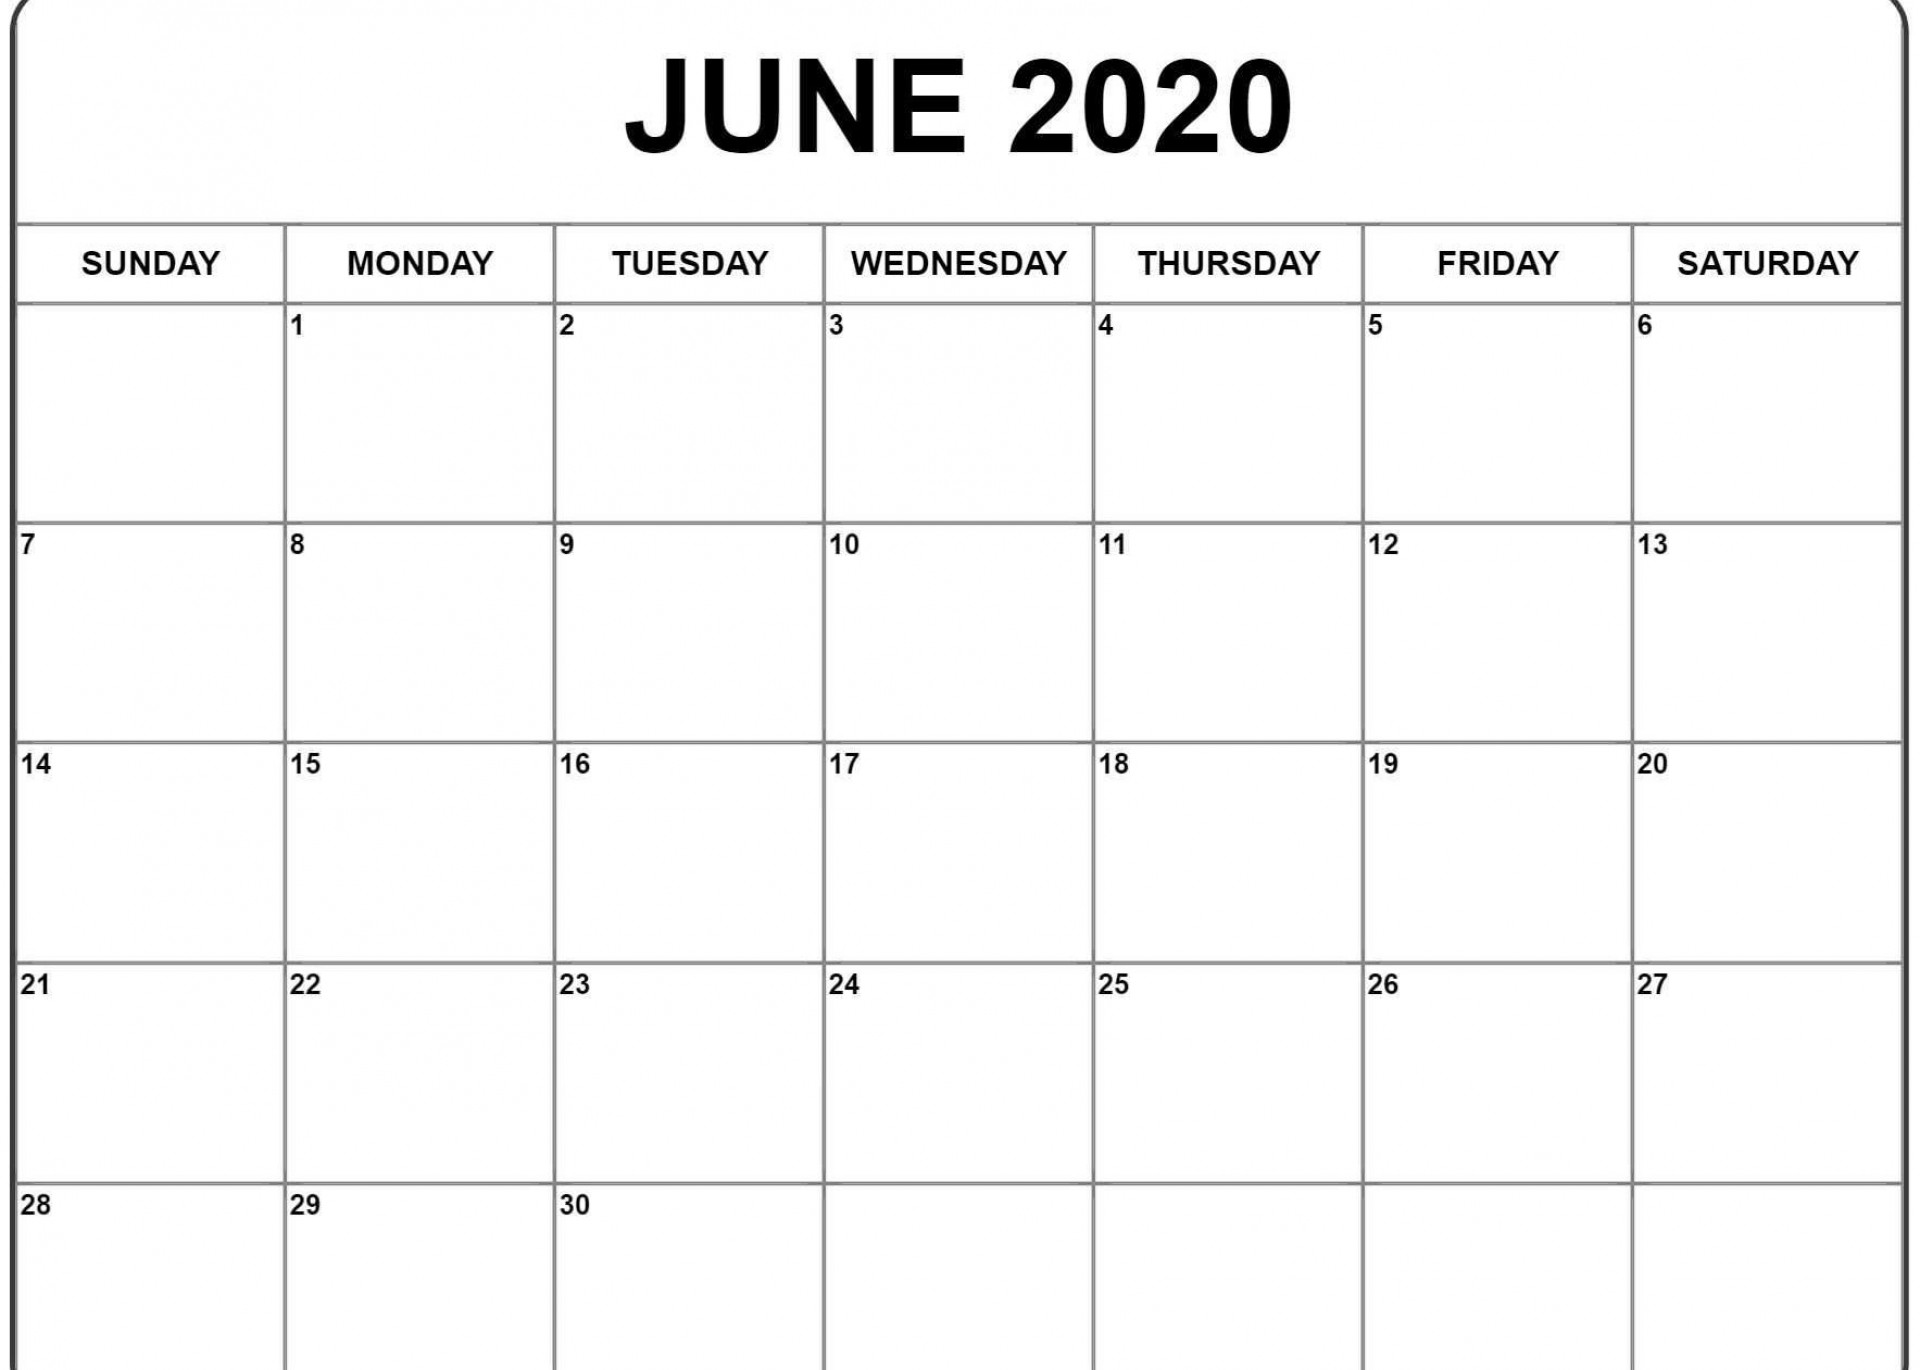 005 Top Calendar Template 2020 Word Picture  April Monthly Microsoft With Holiday February1920